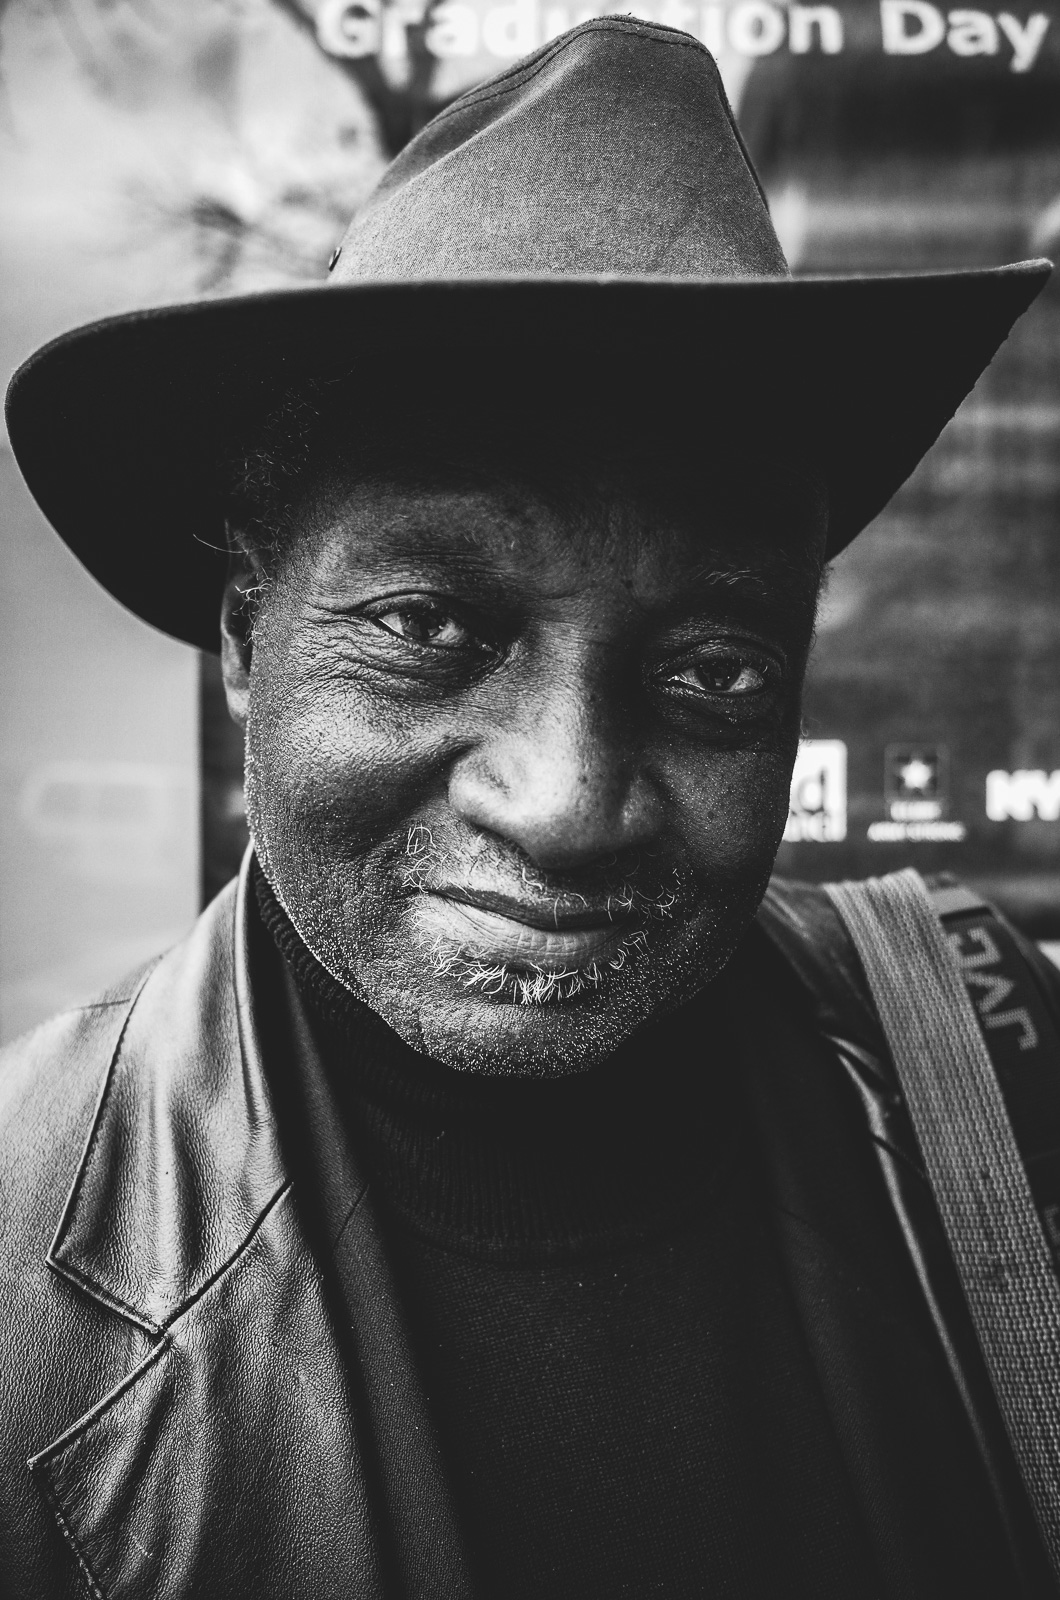 Black and White Portrait of Louis Mendes, famous Polaroid Photographer in New York City